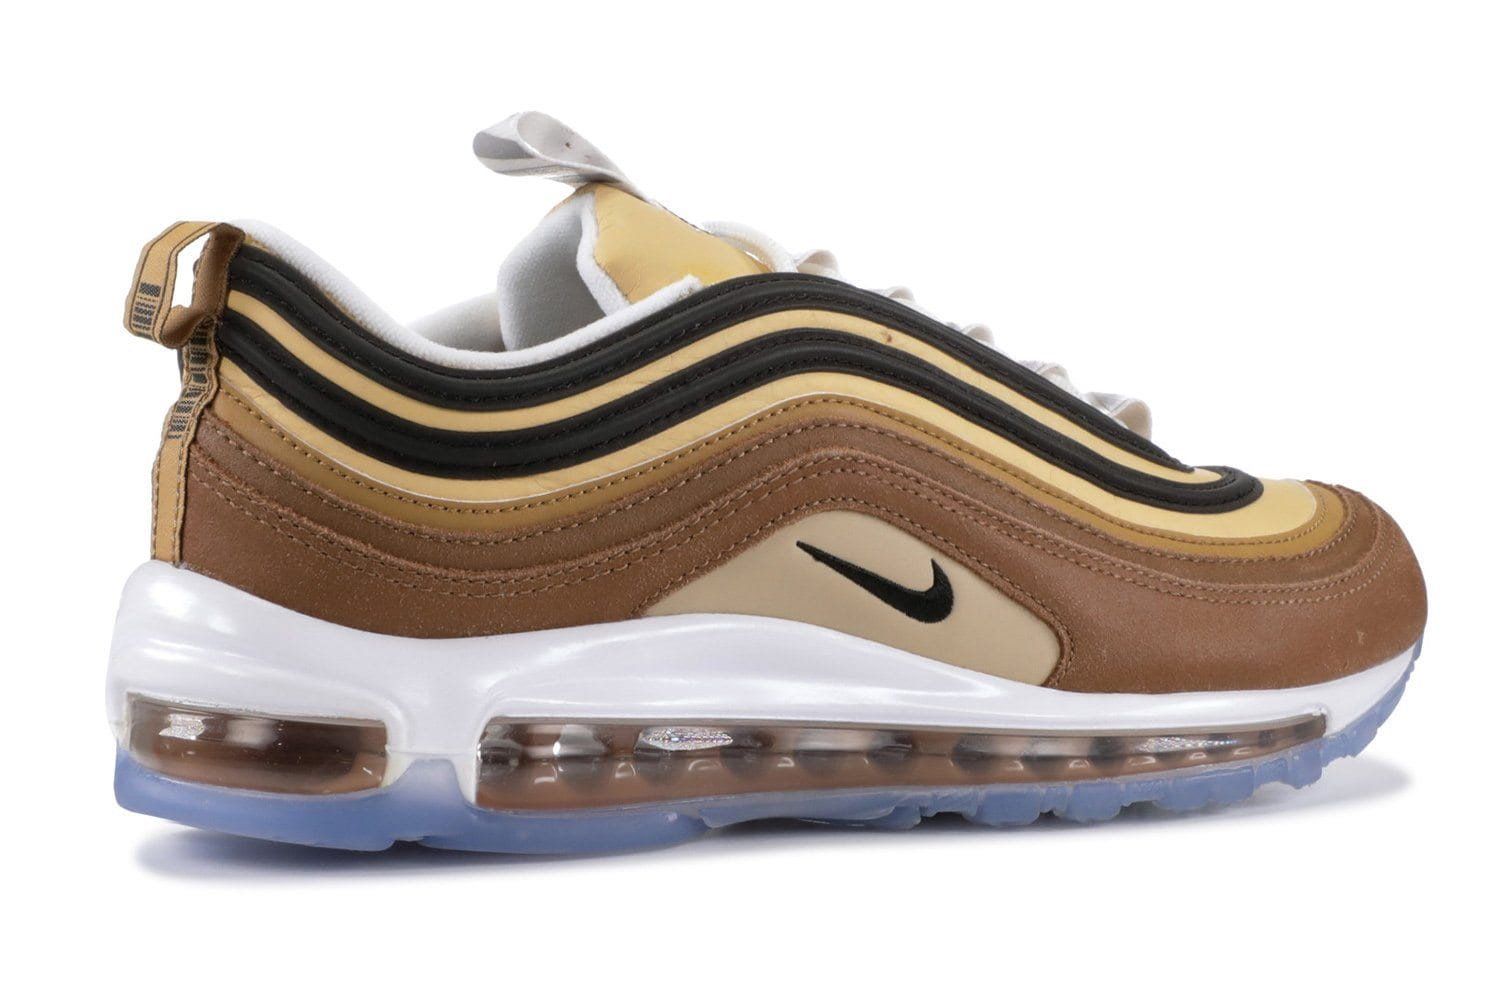 best website bbcad 34040 AIRMAX 97 - 921826 201 MENS FOOTWEAR NIKE